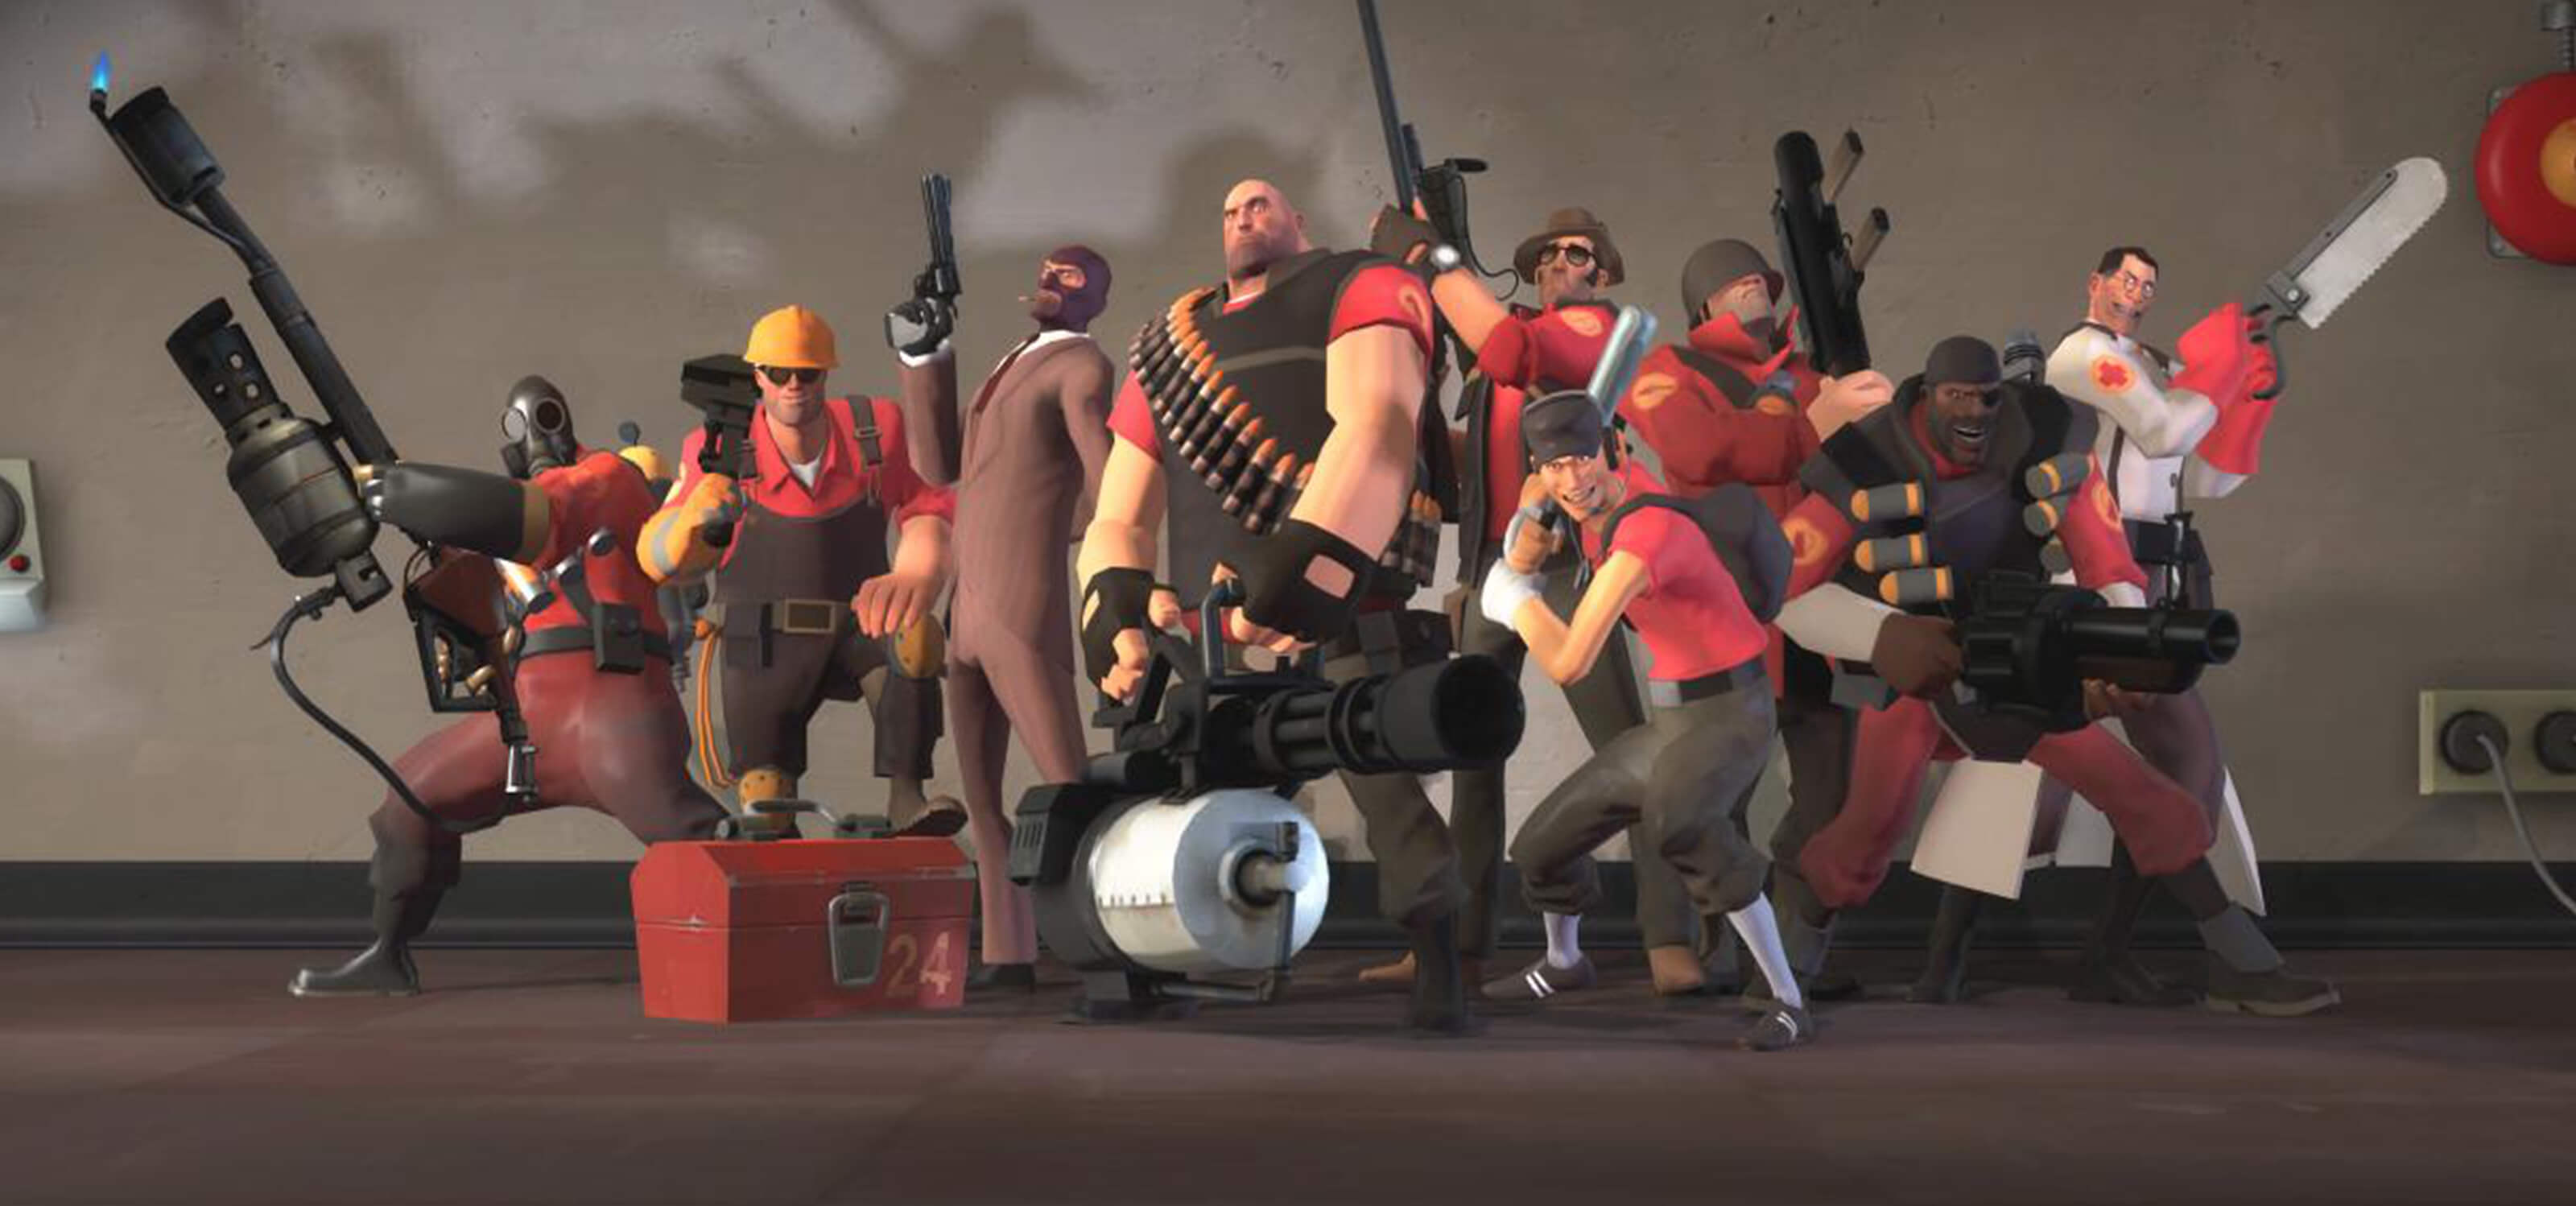 Eric Smith says some of his most memorable experiences at Valve came from working on Team Fortress 2.